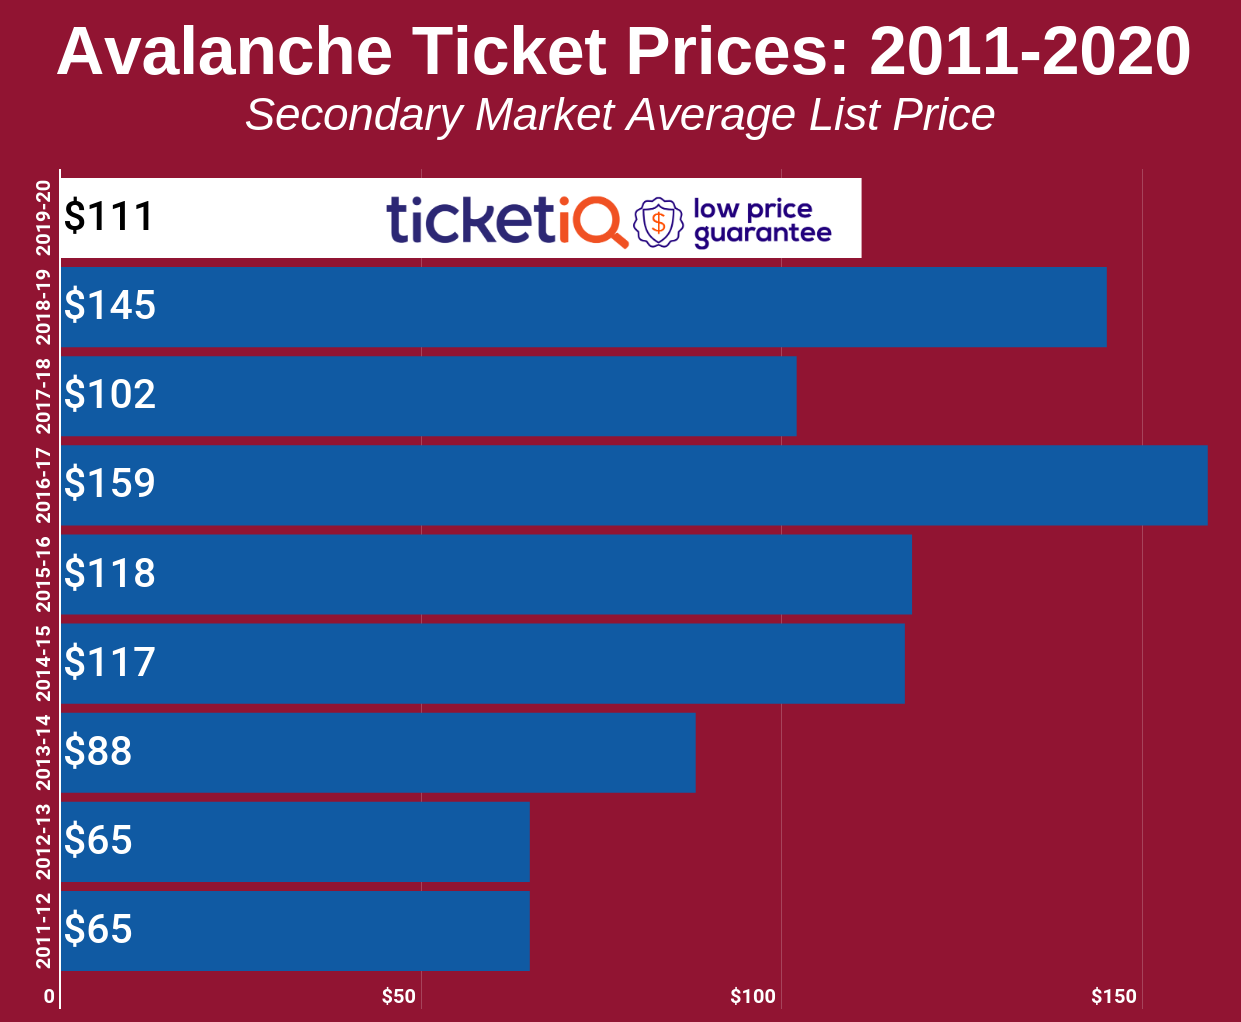 Avalanche Ticket Prices